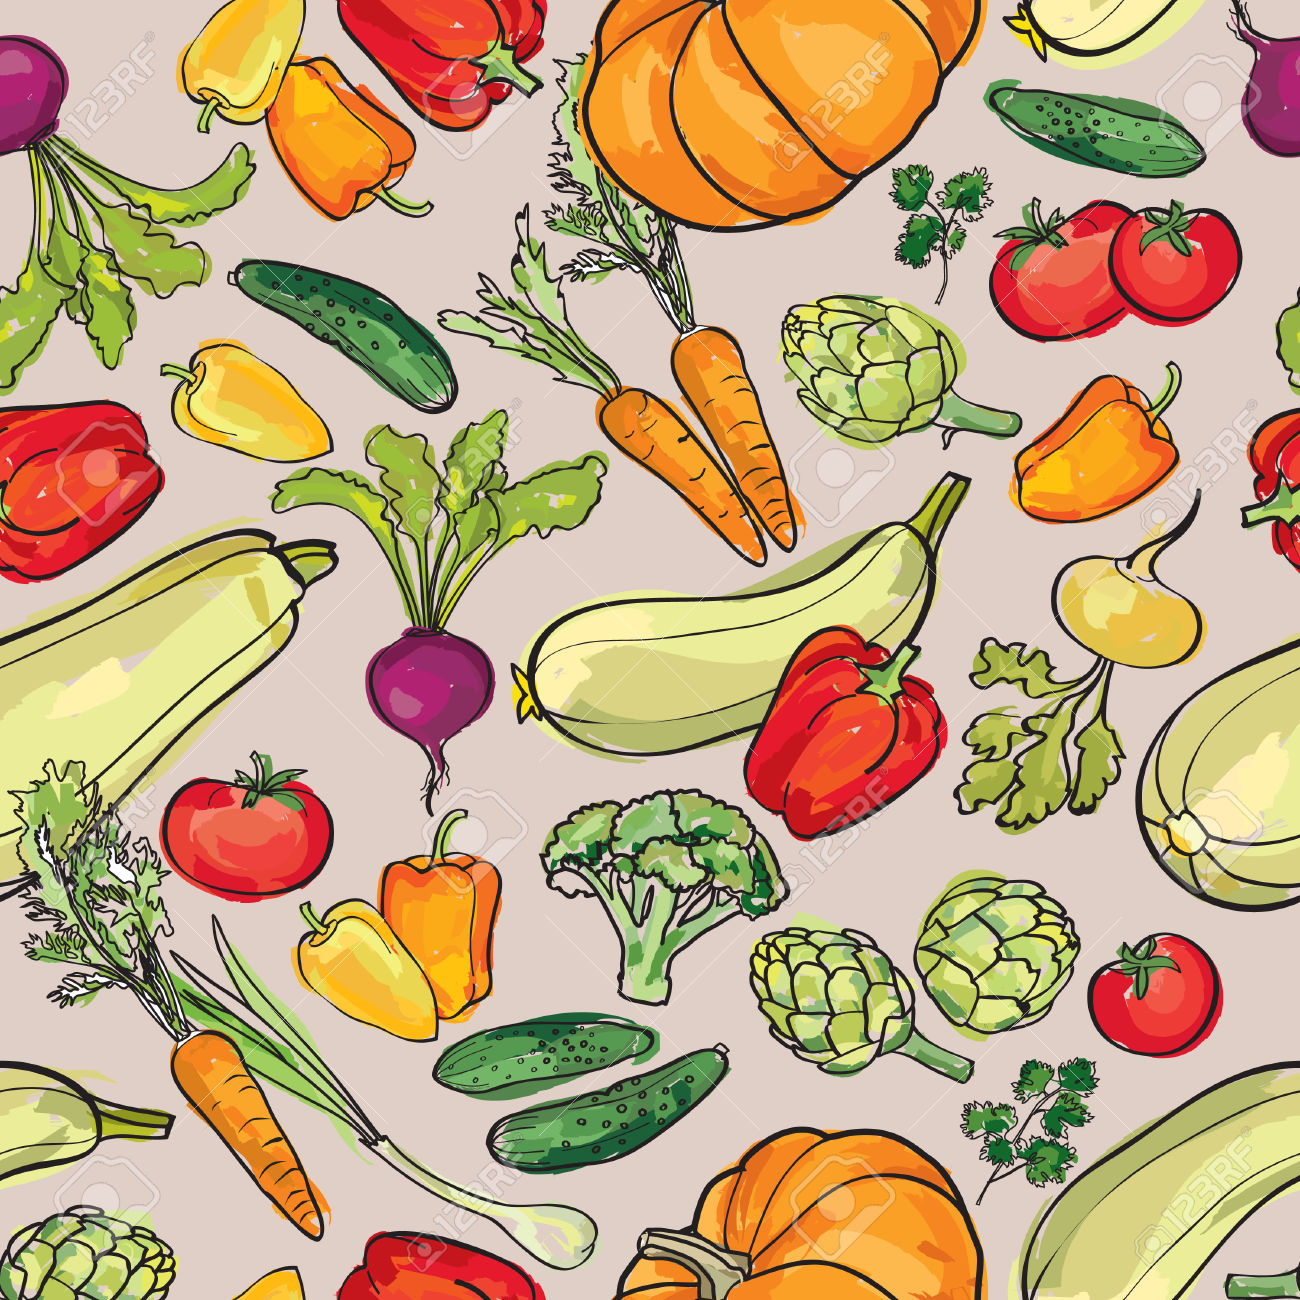 garden harvest clipart 20 free Cliparts | Download images ...